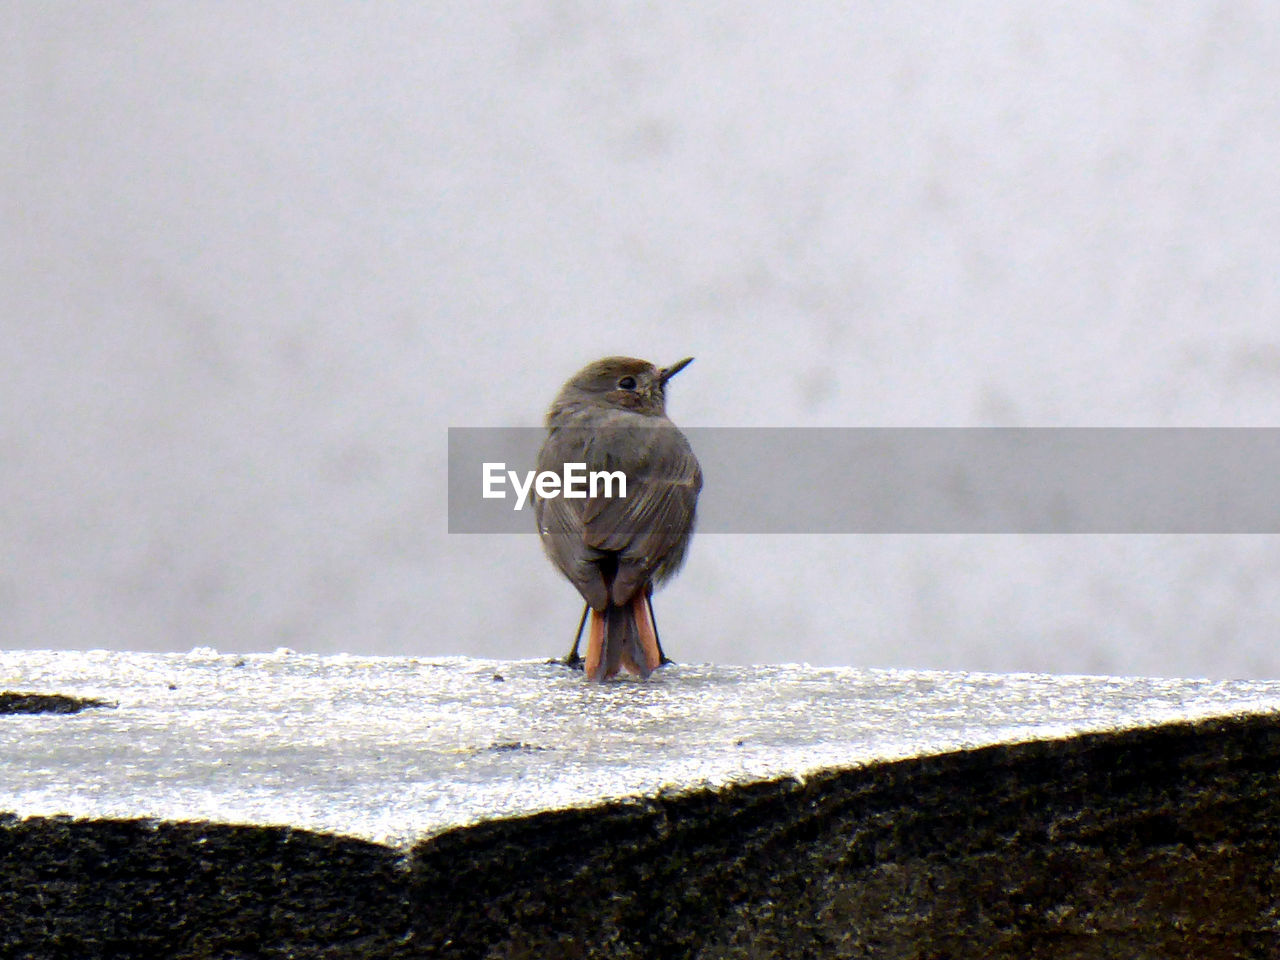 animal themes, animal, bird, one animal, vertebrate, animals in the wild, animal wildlife, perching, day, no people, wall, wall - building feature, nature, sparrow, outdoors, full length, looking, close-up, winter, retaining wall, concrete